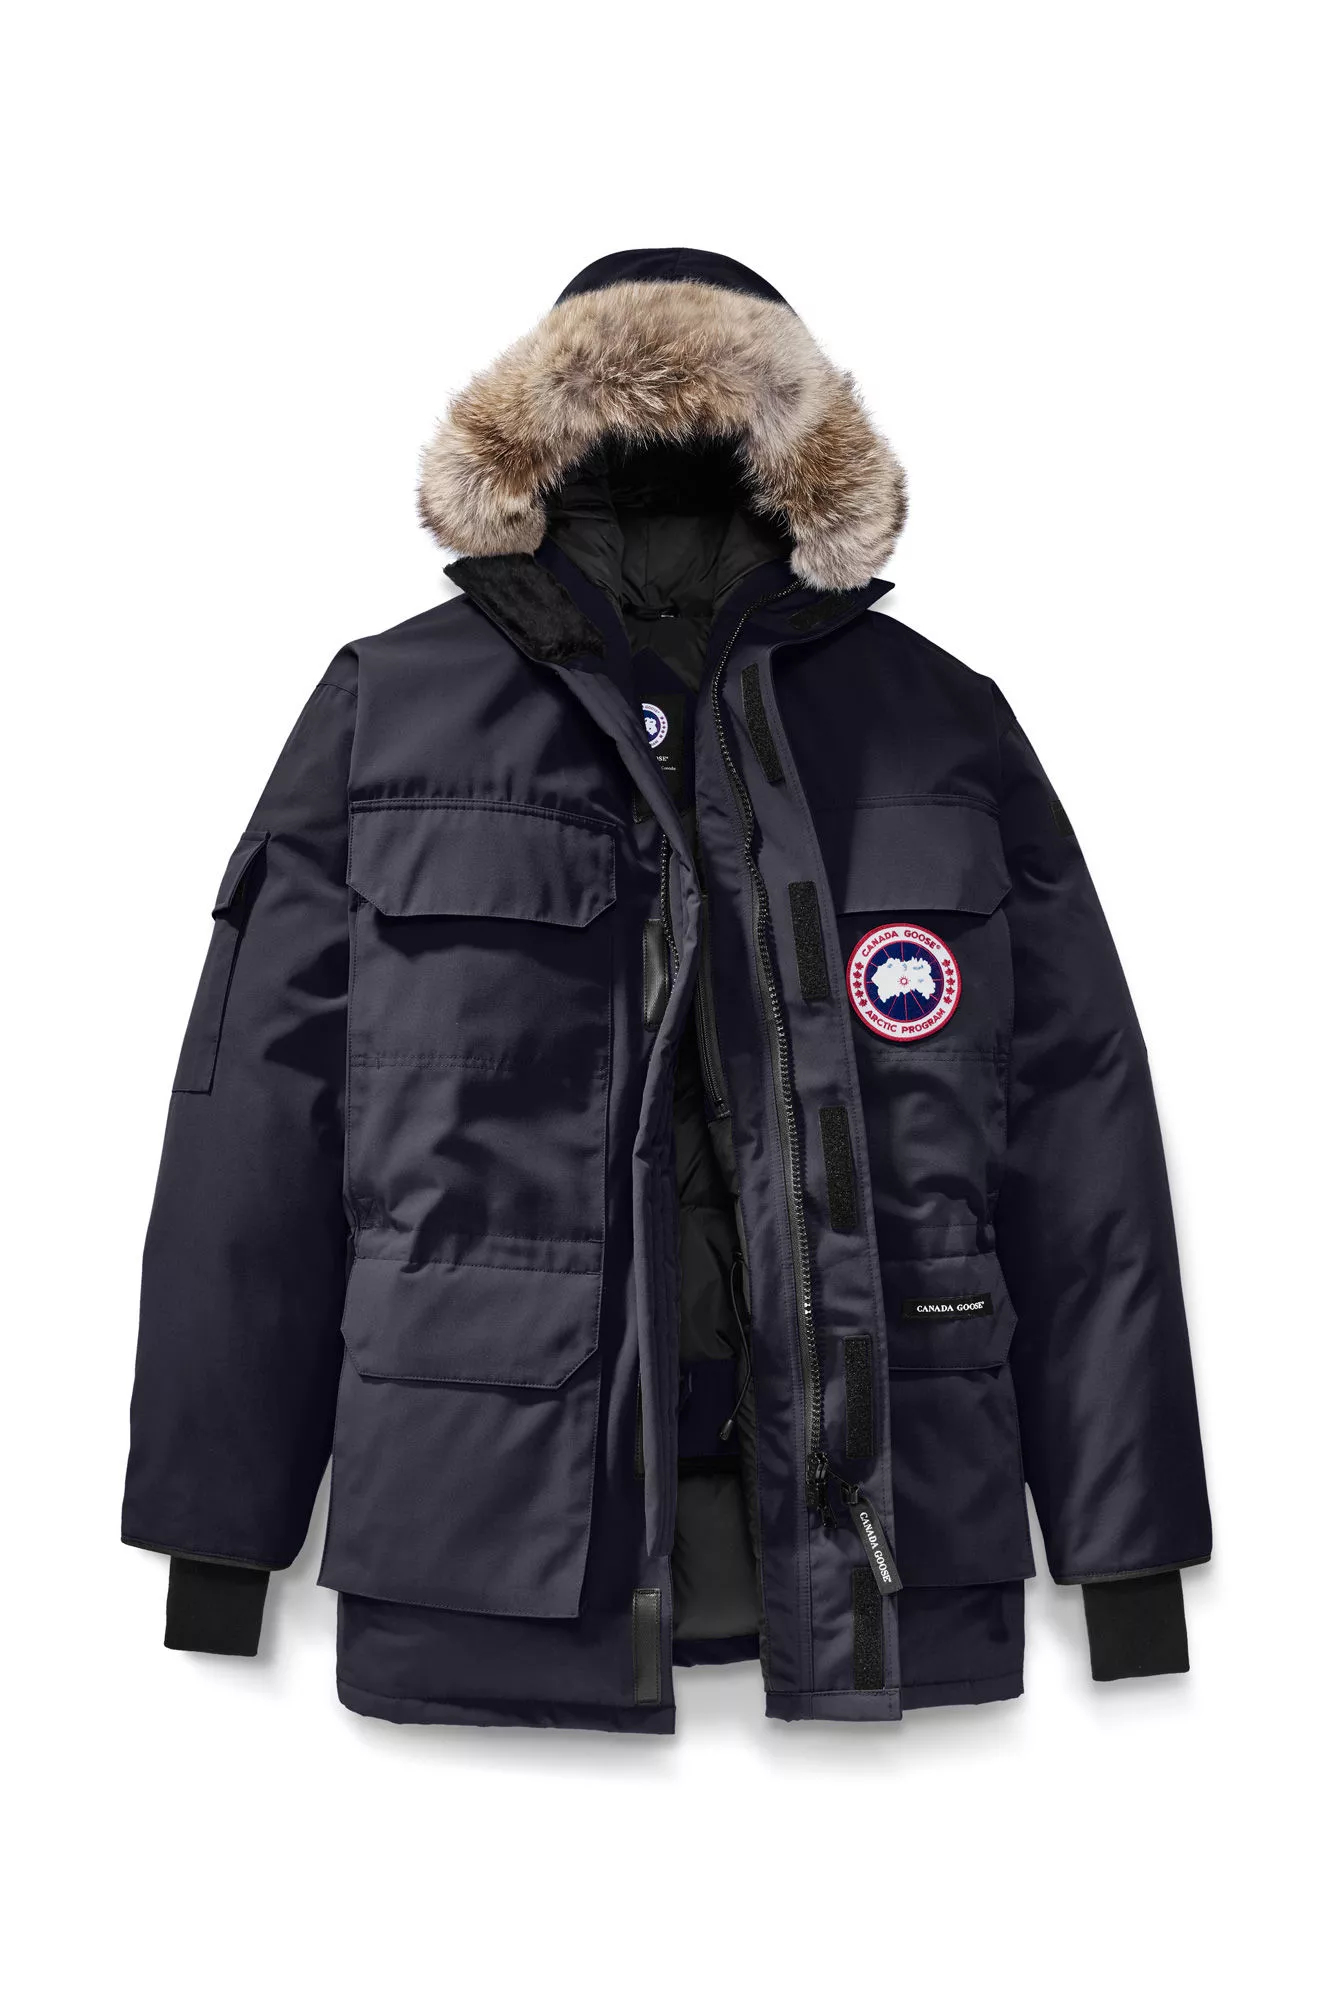 EXPEDITION PARKA DARK BLUE MEN'S 4568